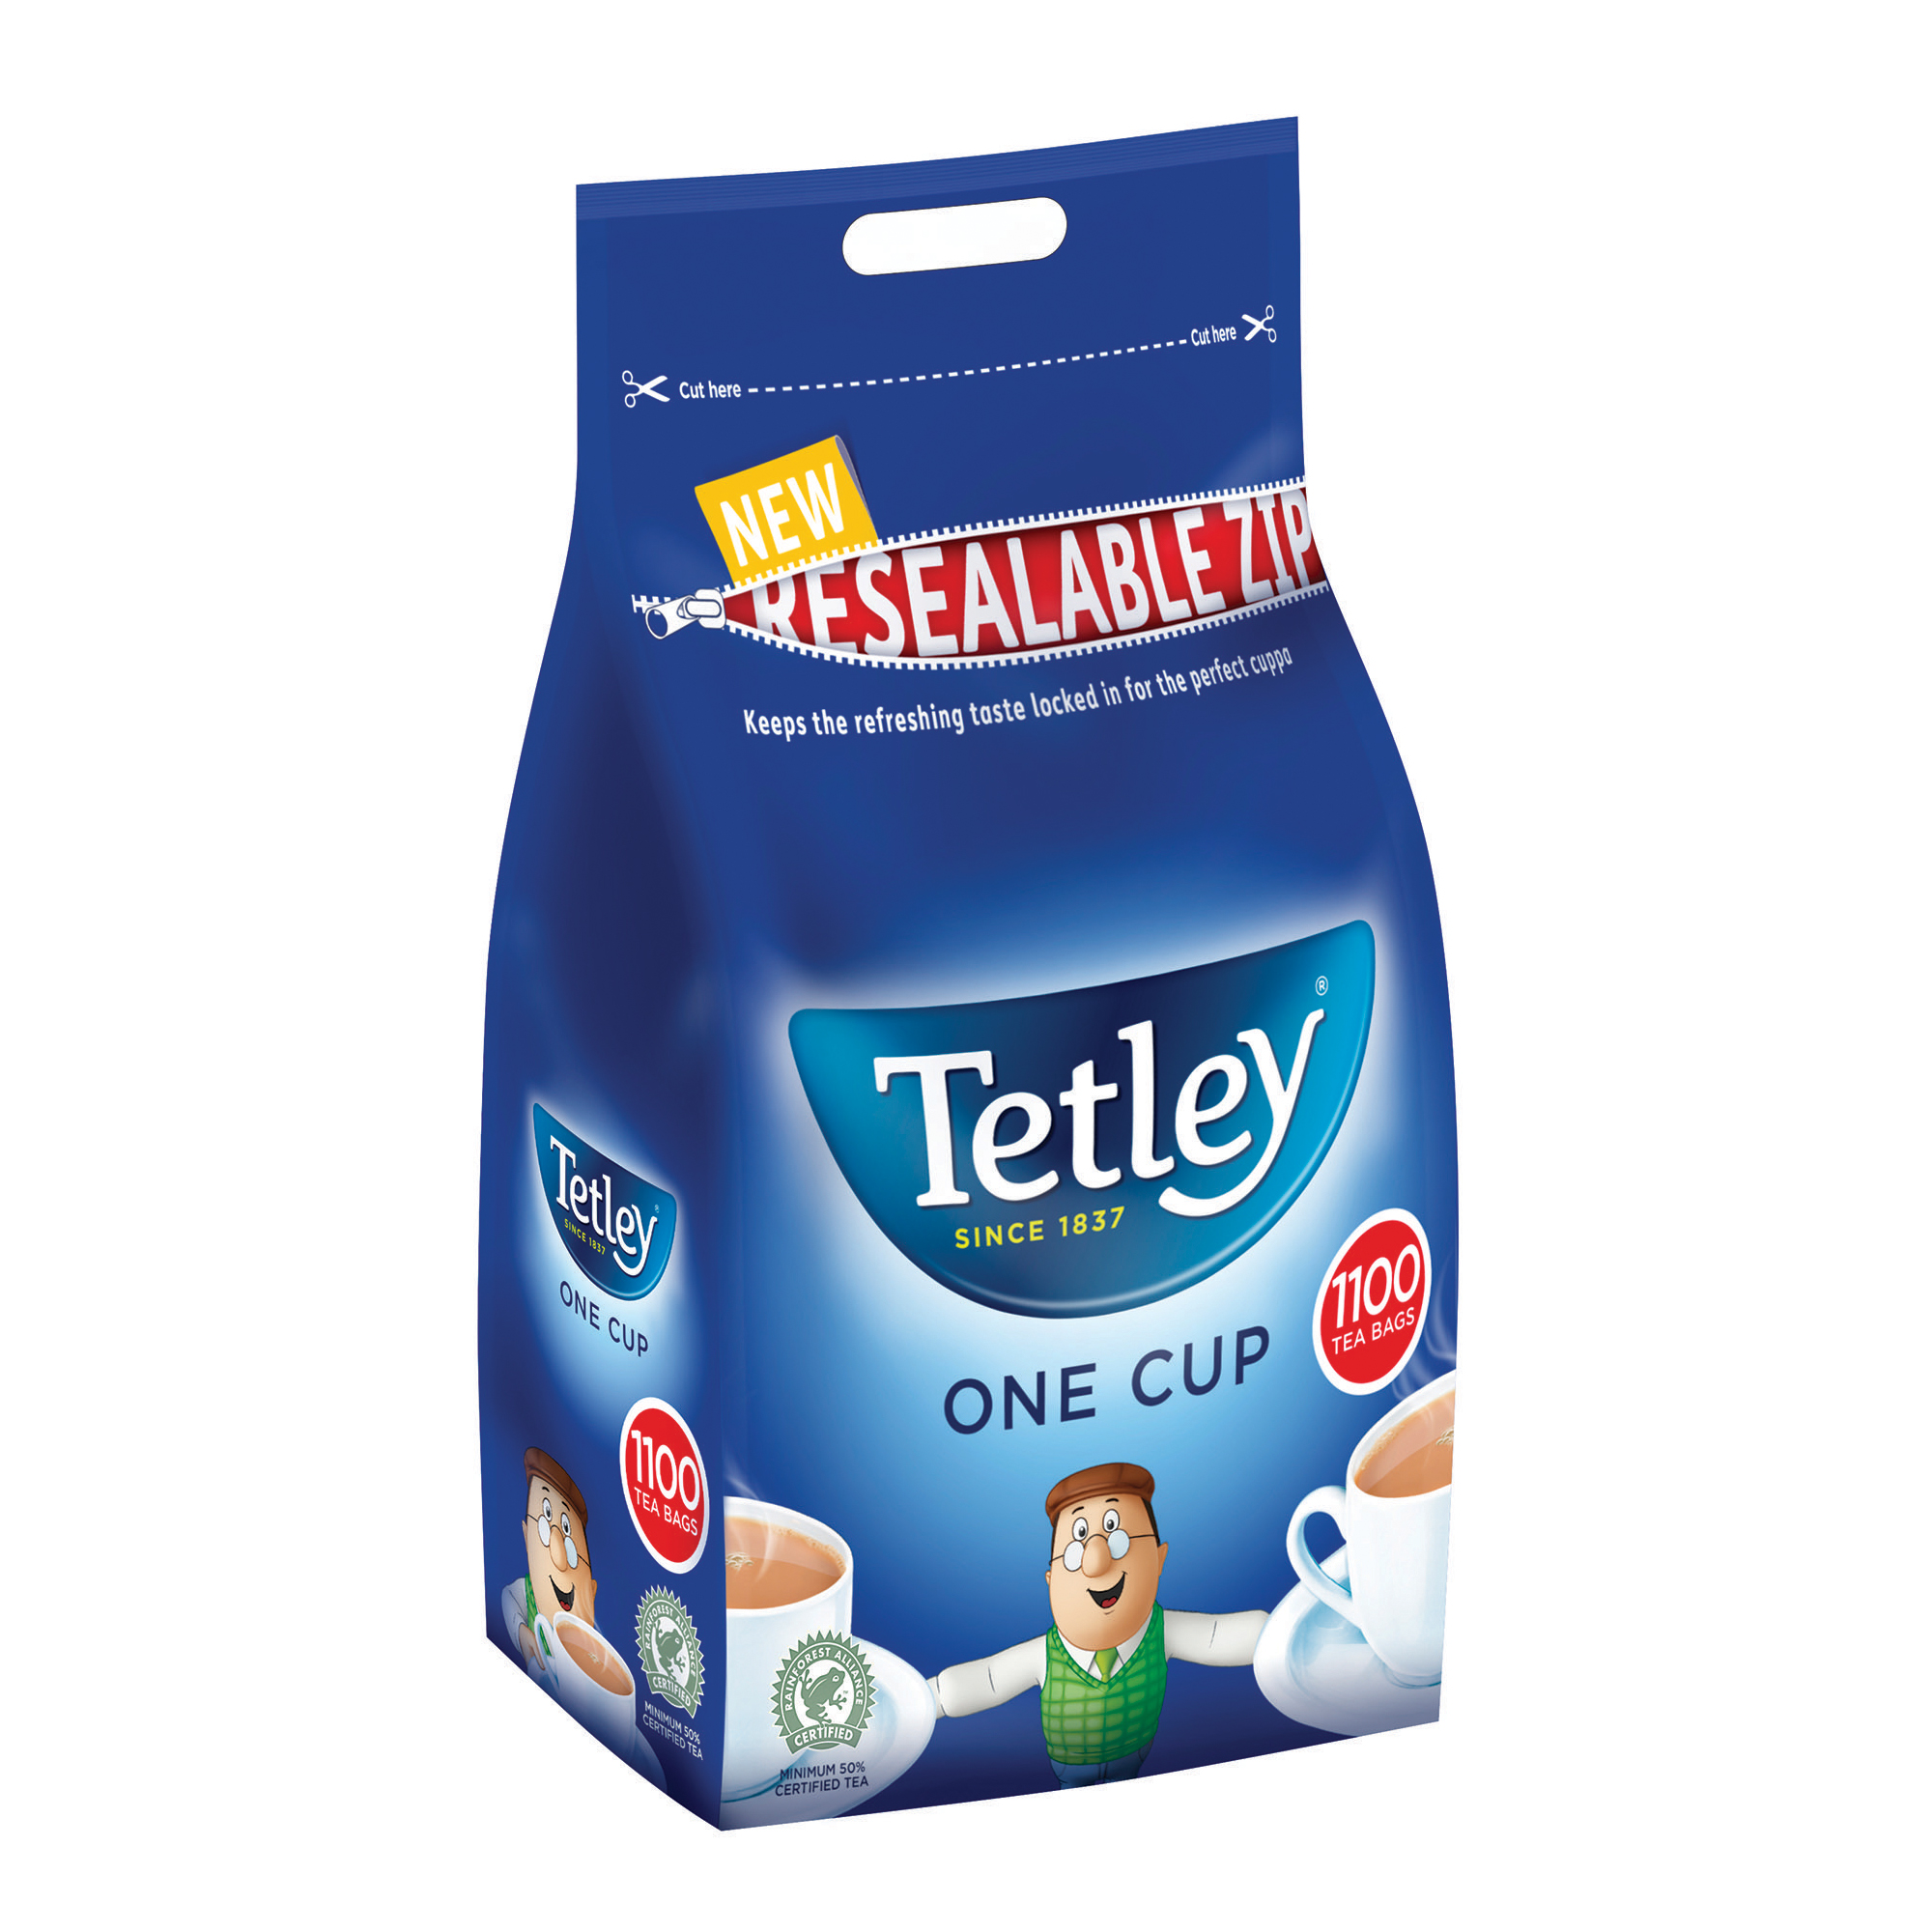 Tetley One Cup Teabags High Quality Tea Ref 1018K Pack 1100